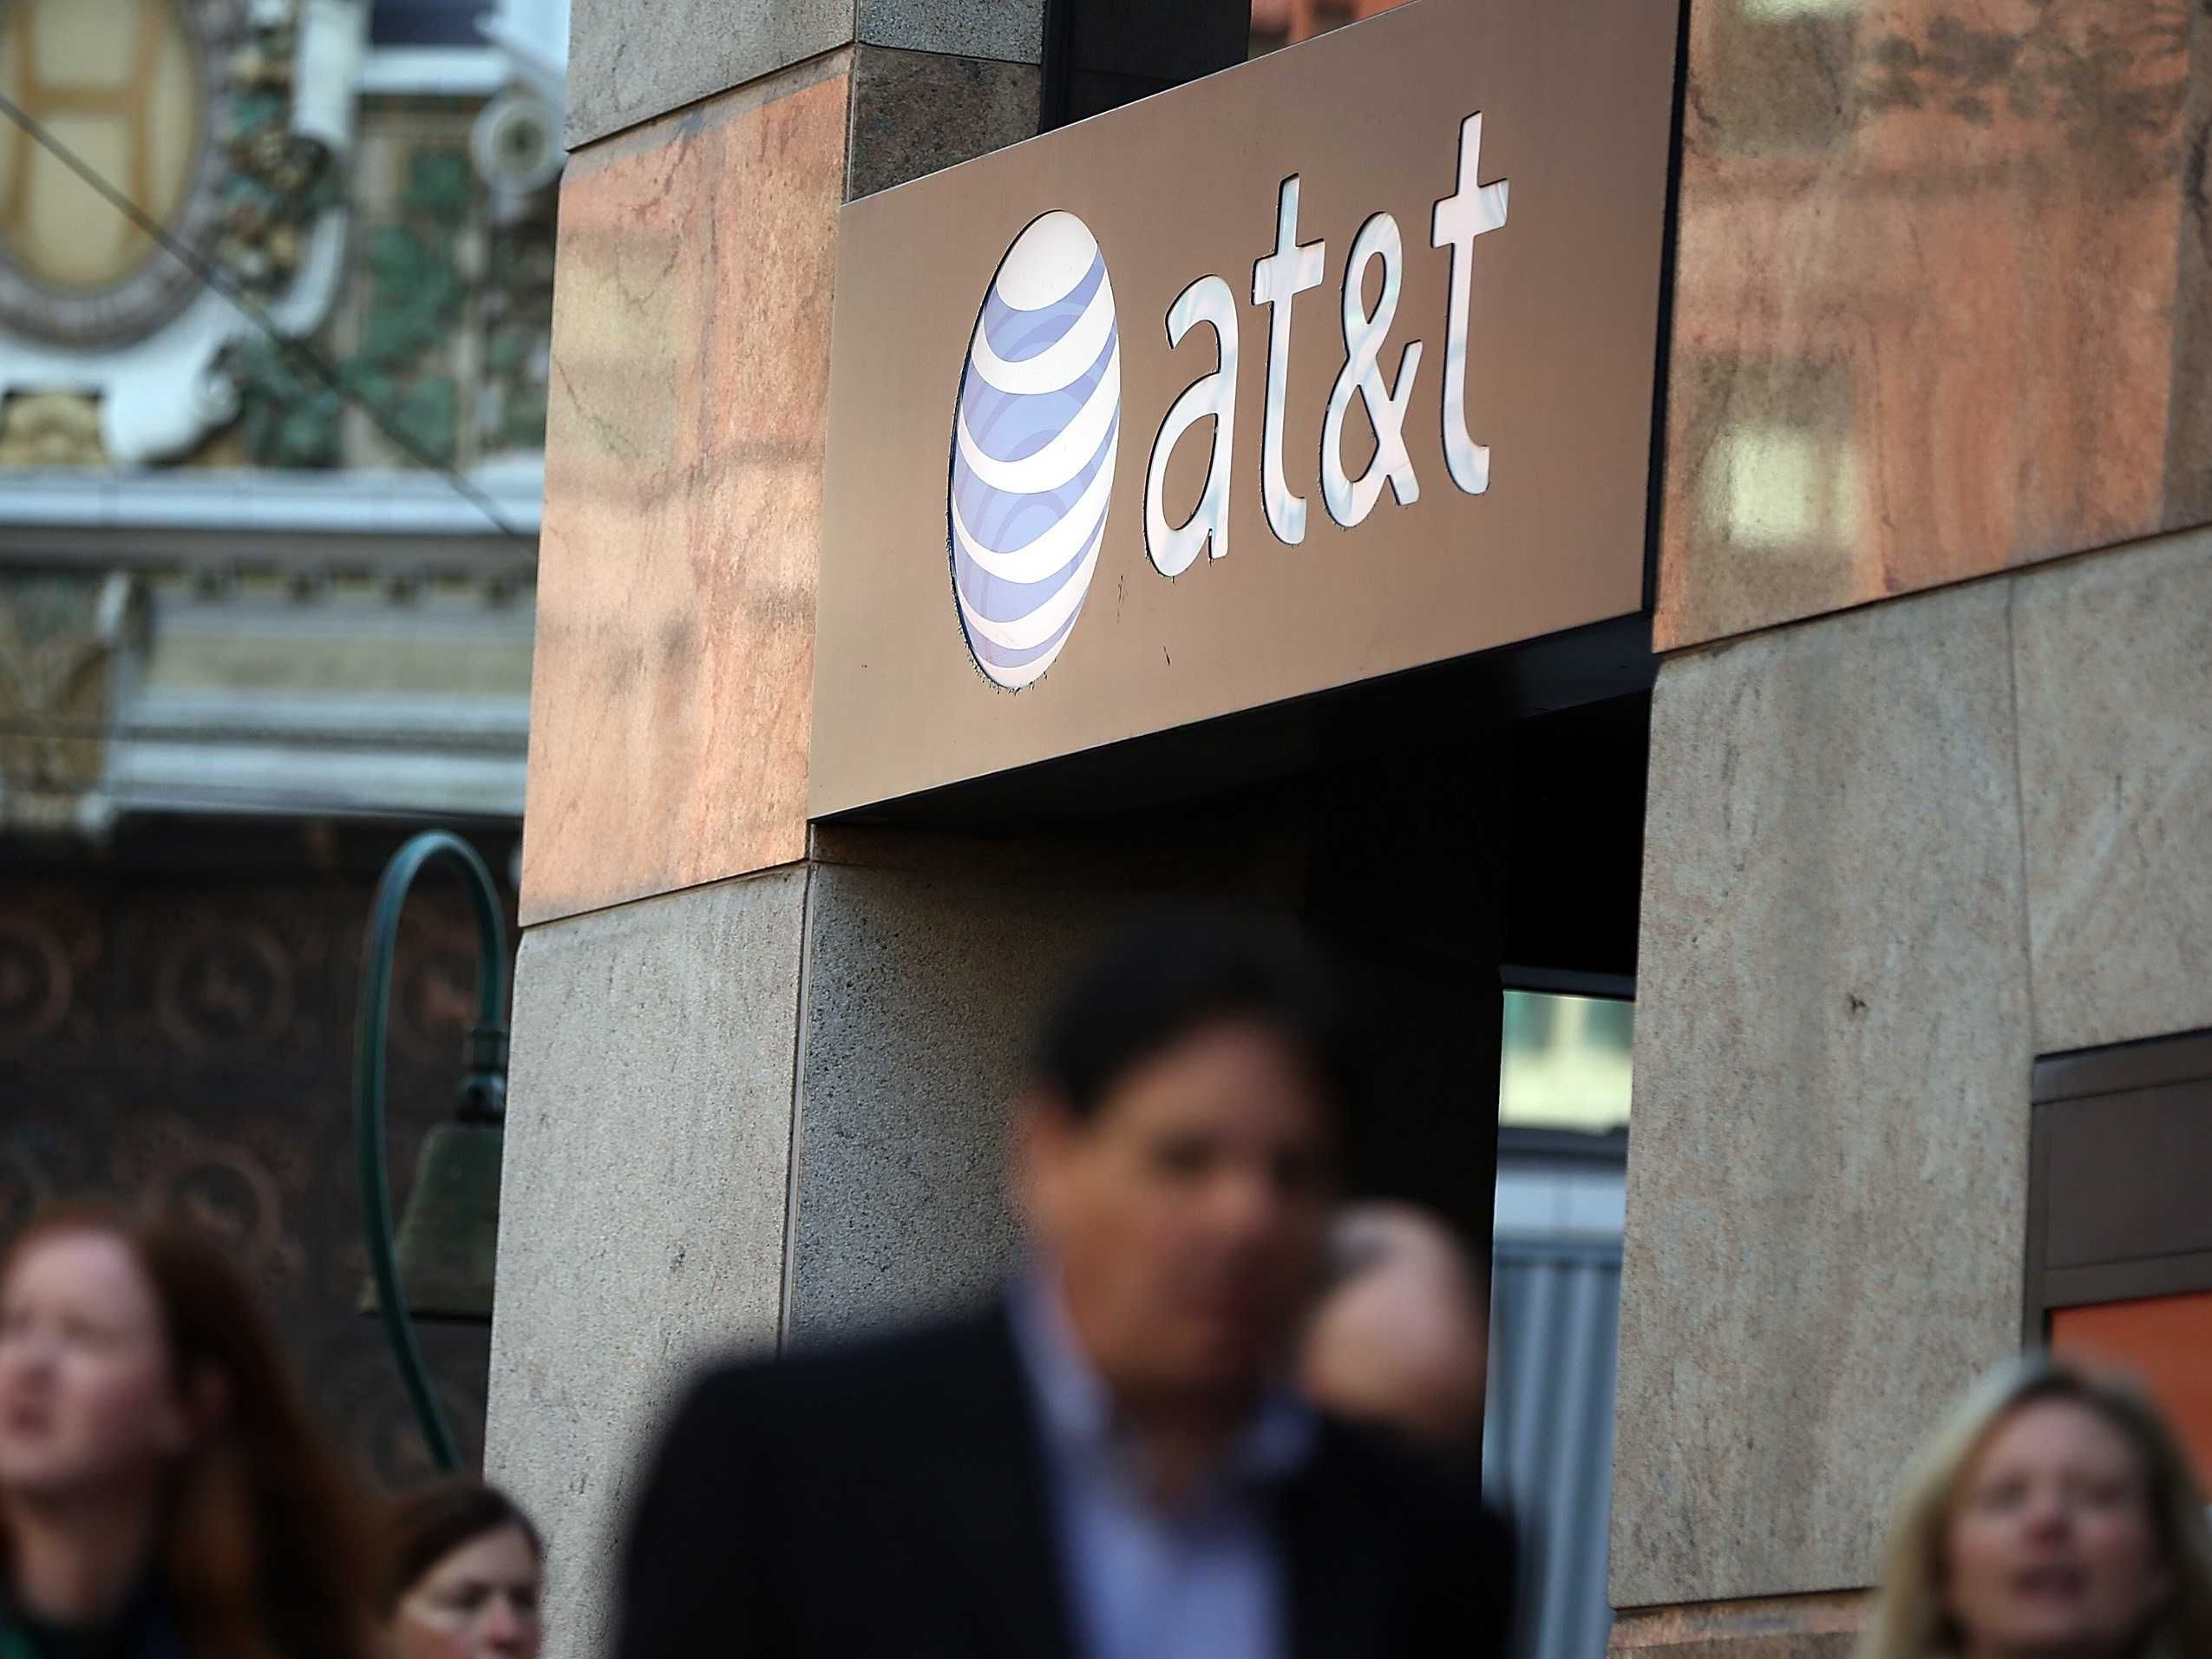 The FCC Fines AT&T 100 Million for Misleading Customers